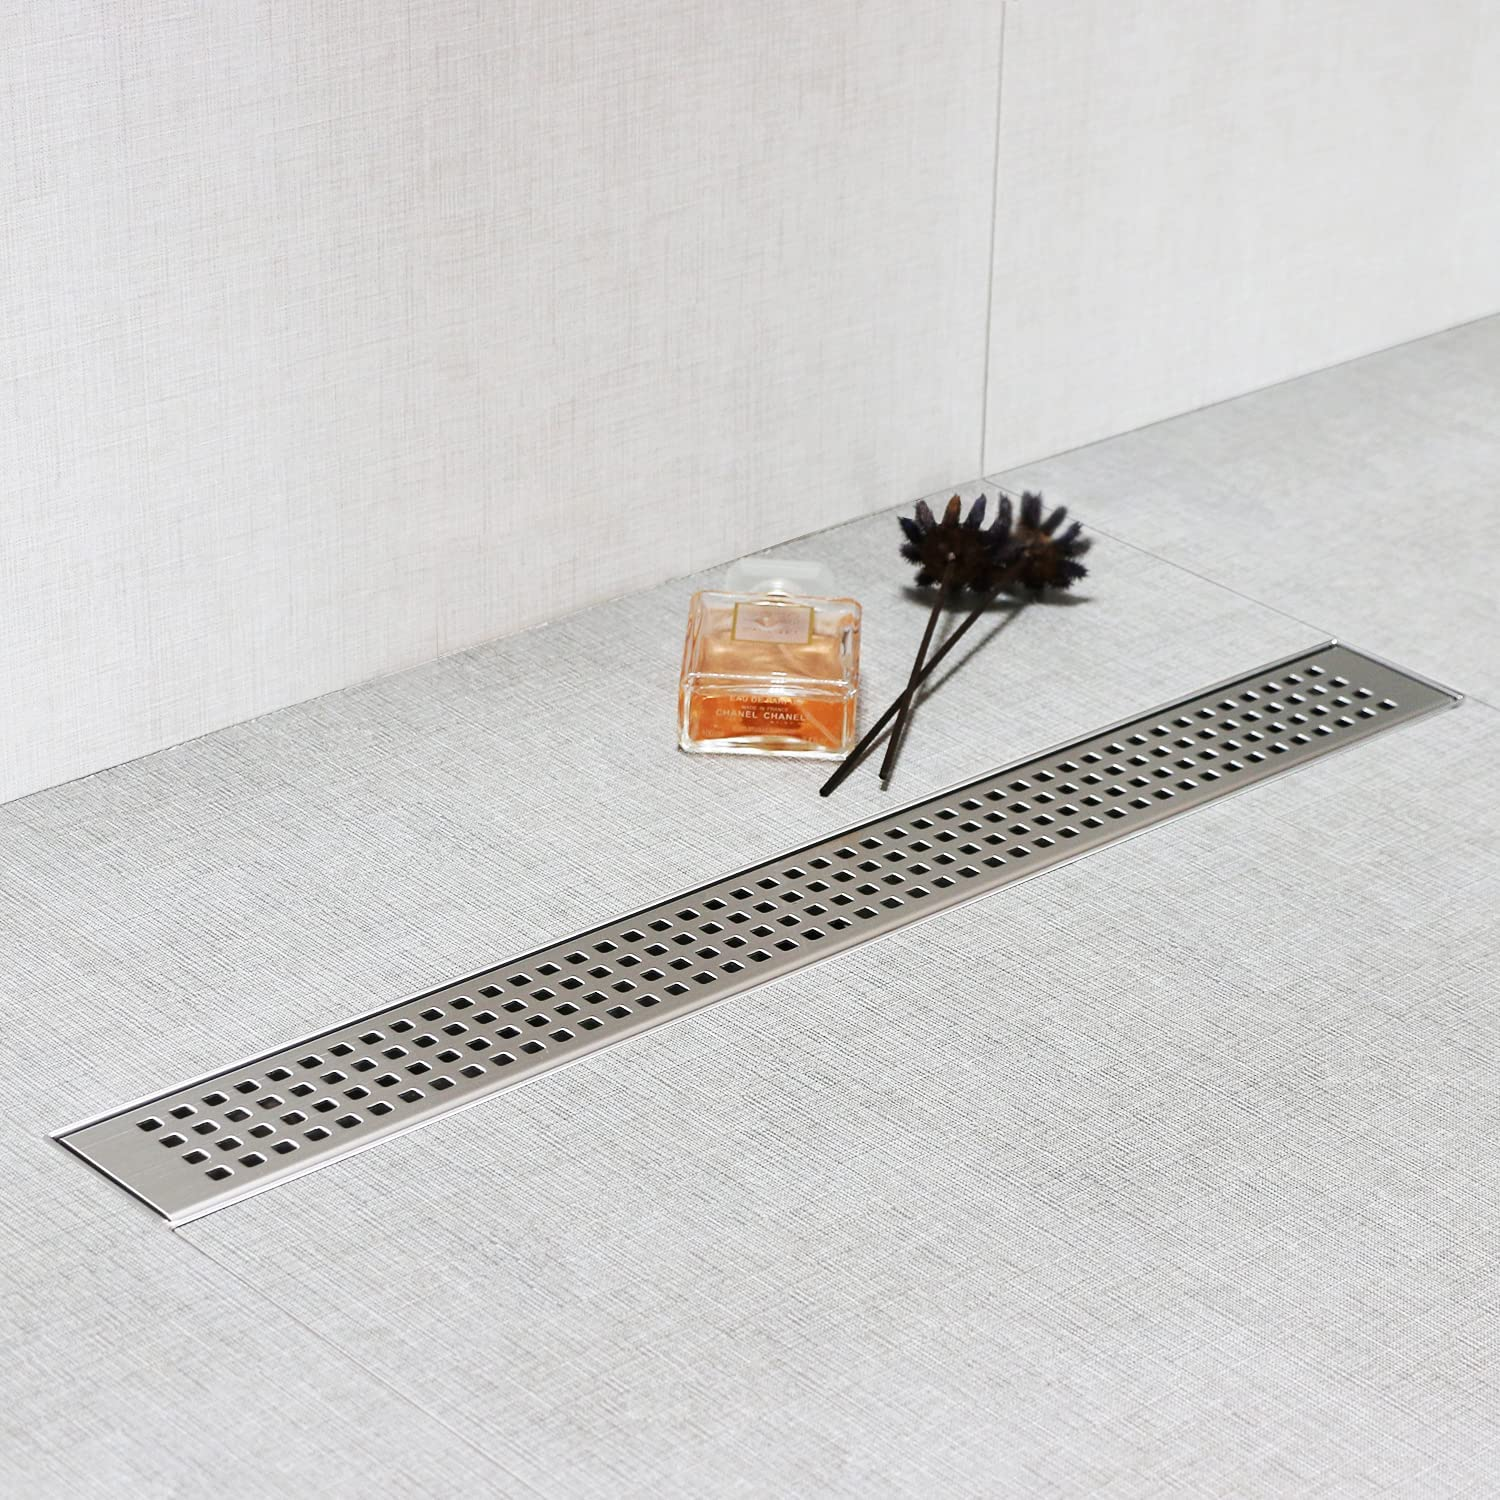 Excellent SaniteModar Linear Shower Drain 48 Ho Removable with Square Max 84% OFF inch